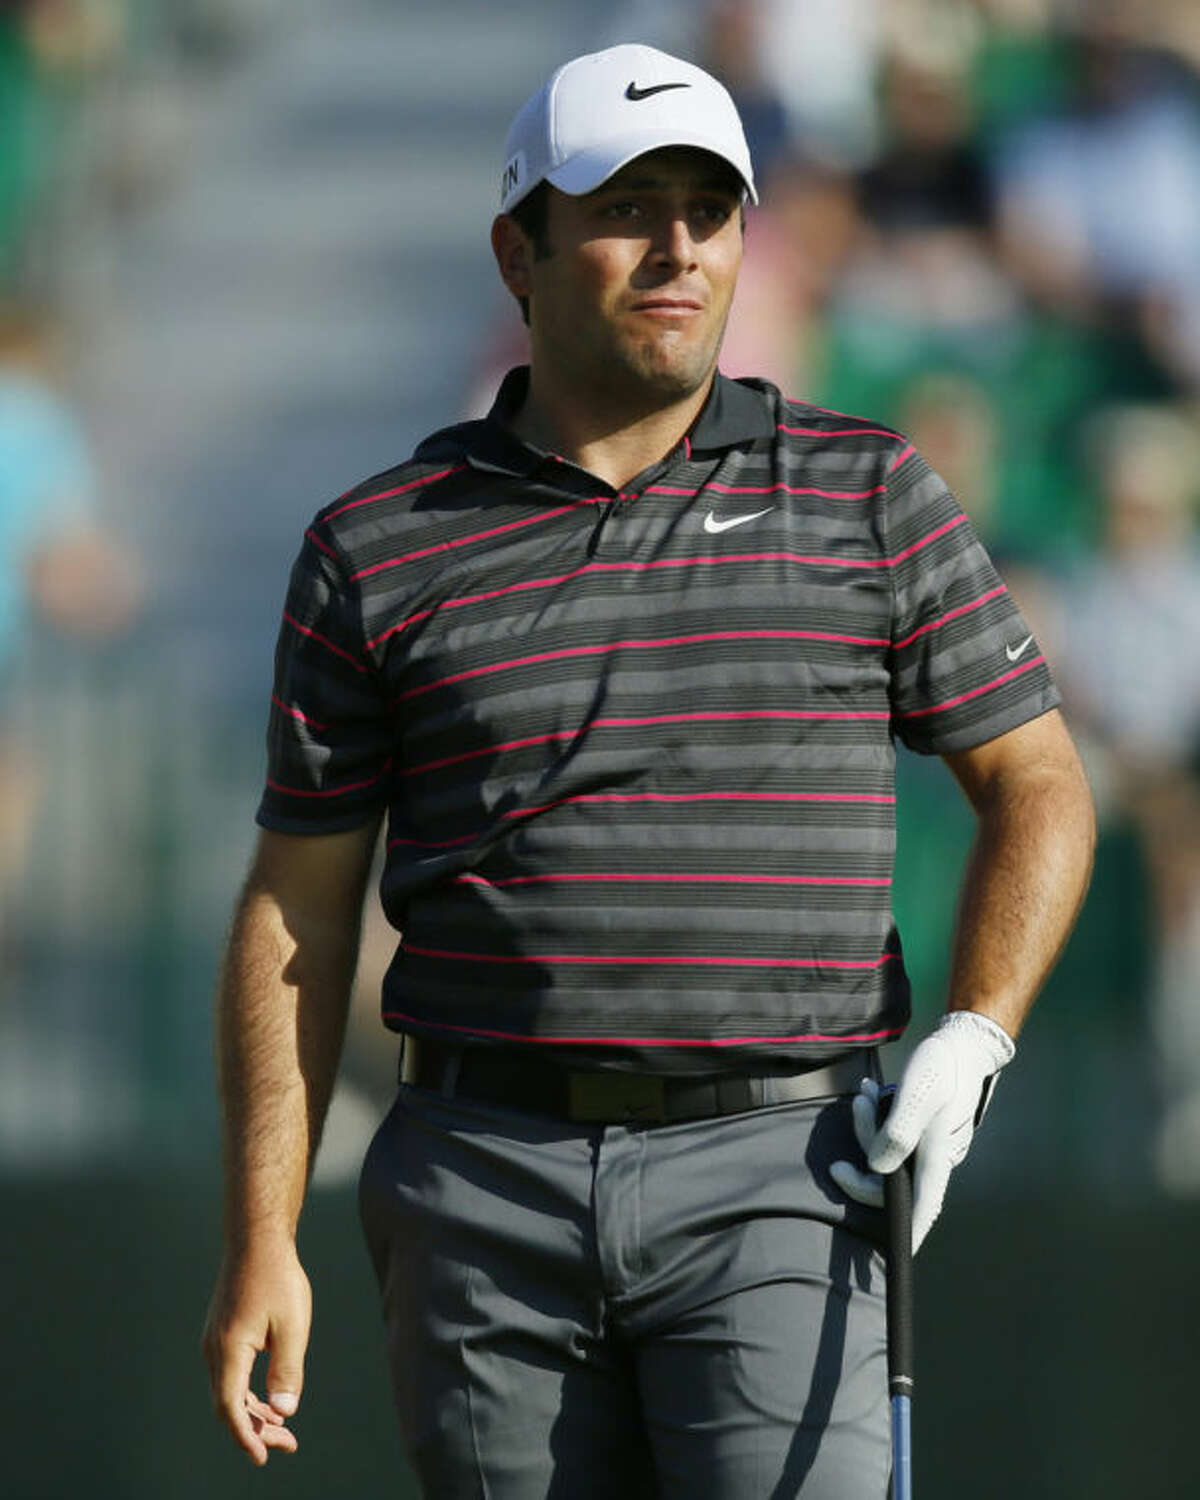 Francesco Molinari of Italy watches his shot along the 4th fairway during the first day of the British Open Golf championship at the Royal Liverpool golf club, Hoylake, England, Thursday July 17, 2014. (AP Photo/Alastair Grant)